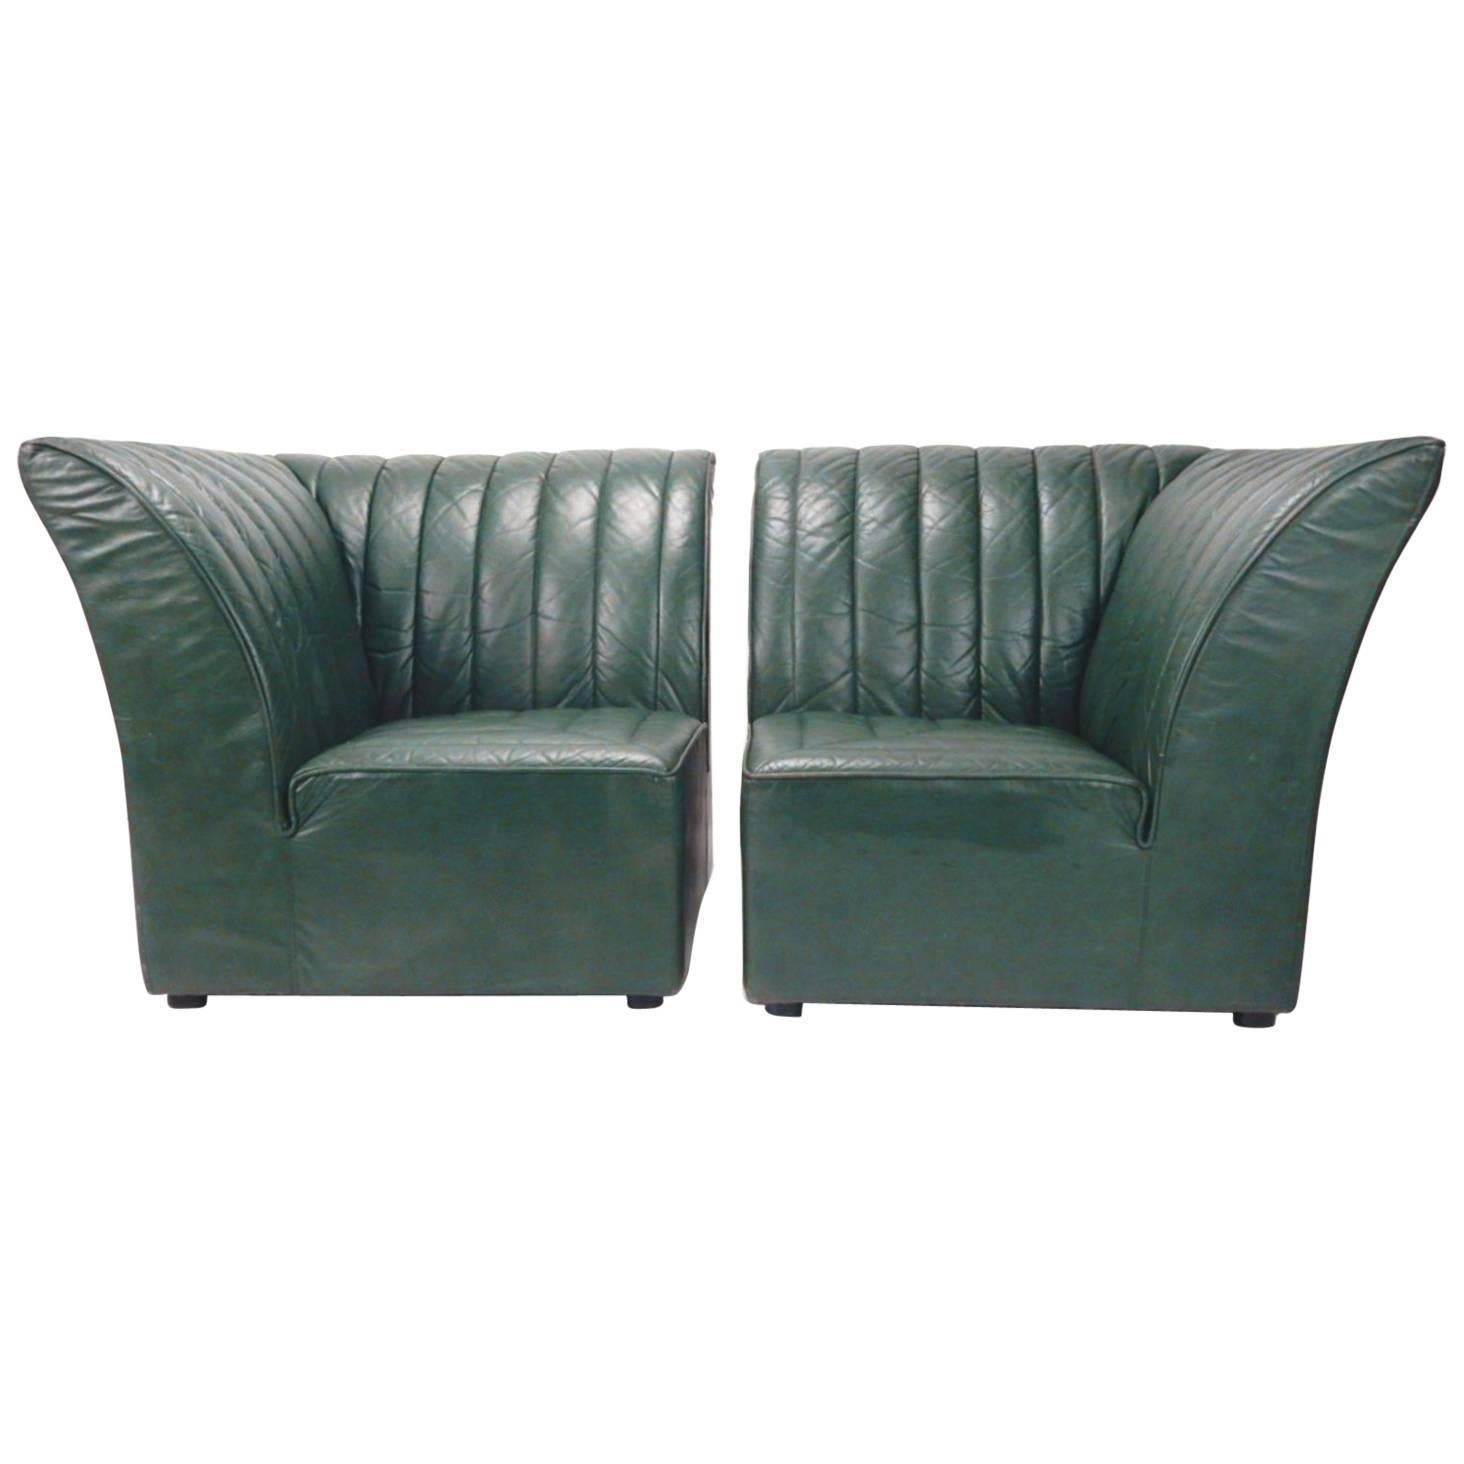 Guido Faleschini for Pace Collection by i4 Mariani Italy Club Settee Chairs For Sale  sc 1 st  1stDibs & Guido Faleschini for Pace Collection by i4 Mariani Italy Club Settee ...